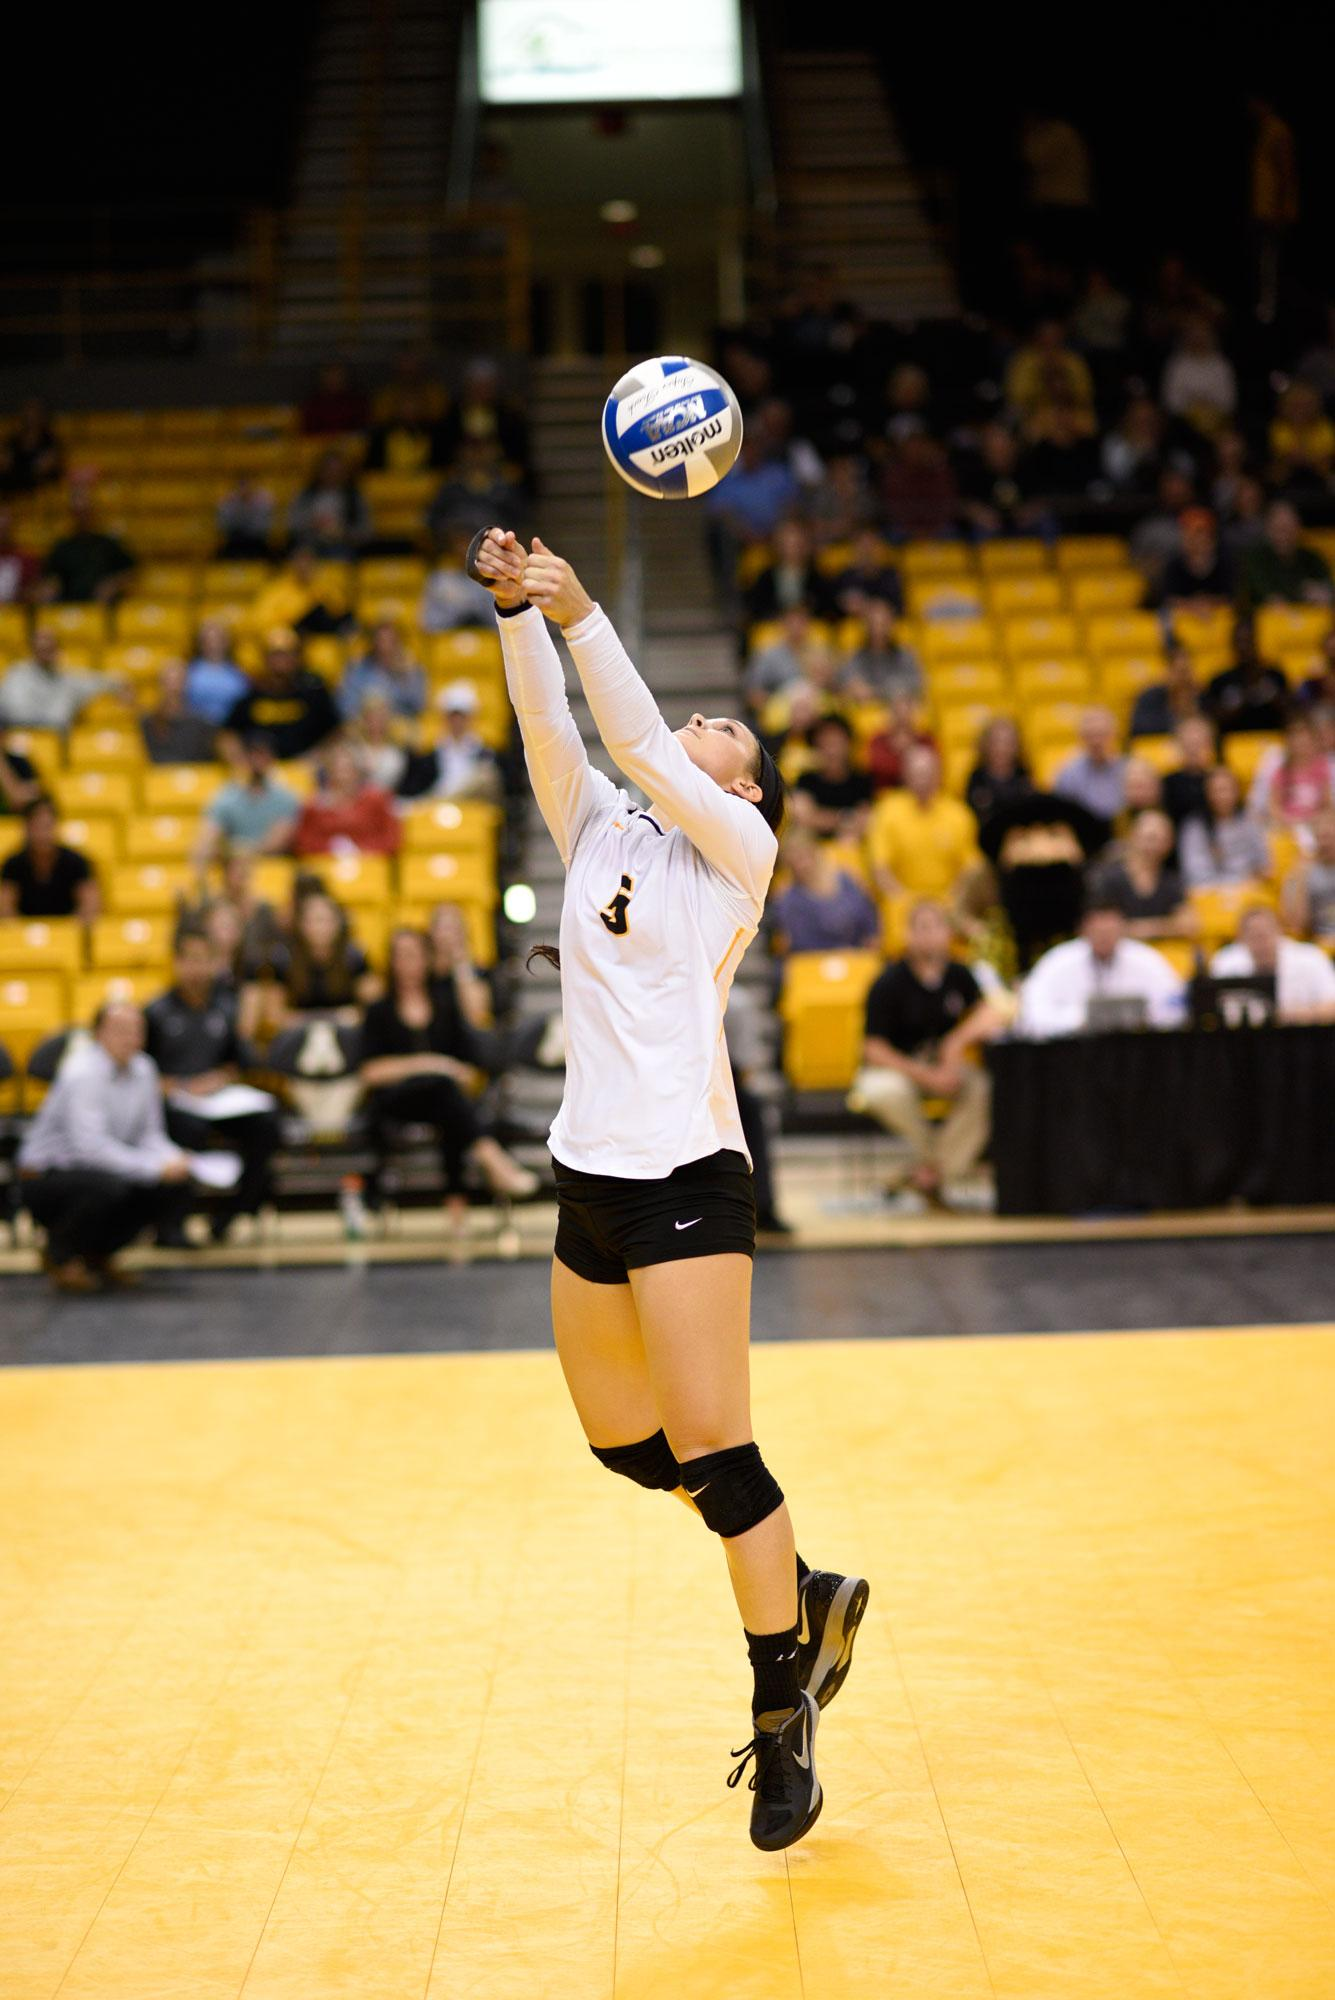 Senior+libero+Meghan+Mahoney%2C+who+has+437+digs+on+the+year+and+is+sixth+in+the+Sun+Belt.+%7C+Courtesy+App+State+Athletics.